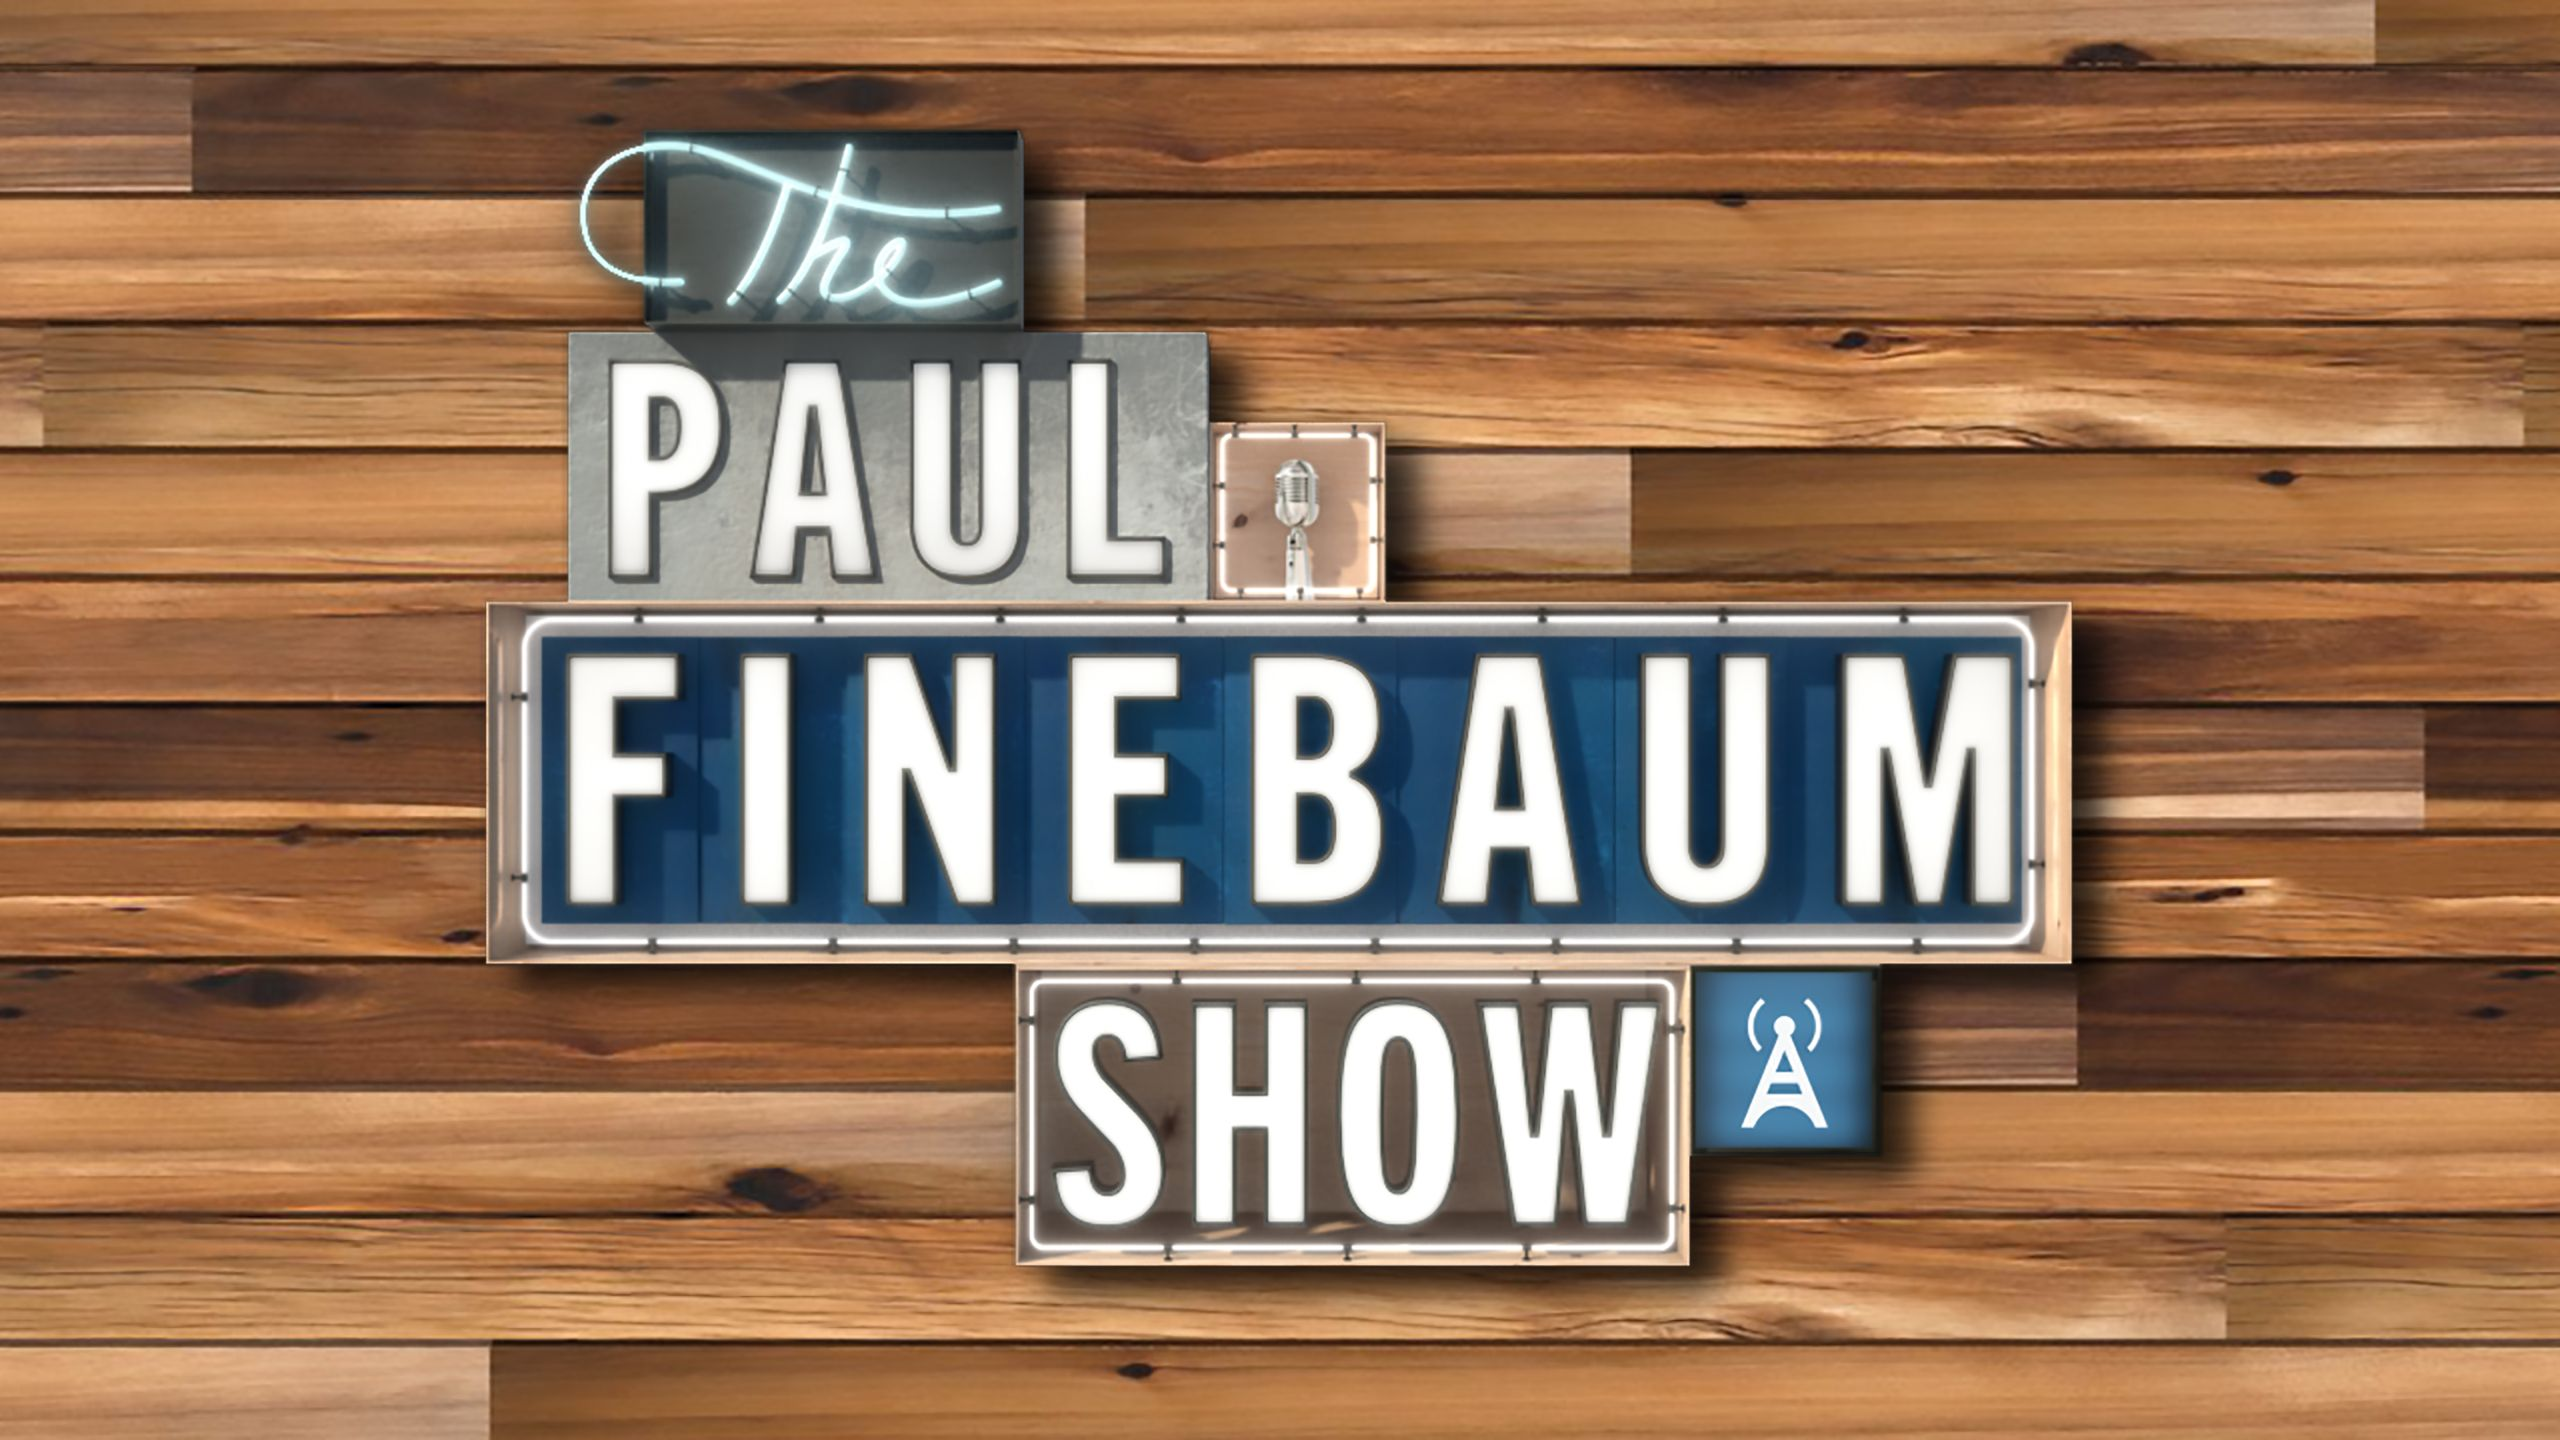 Tue, 3/20 - The Paul Finebaum Show